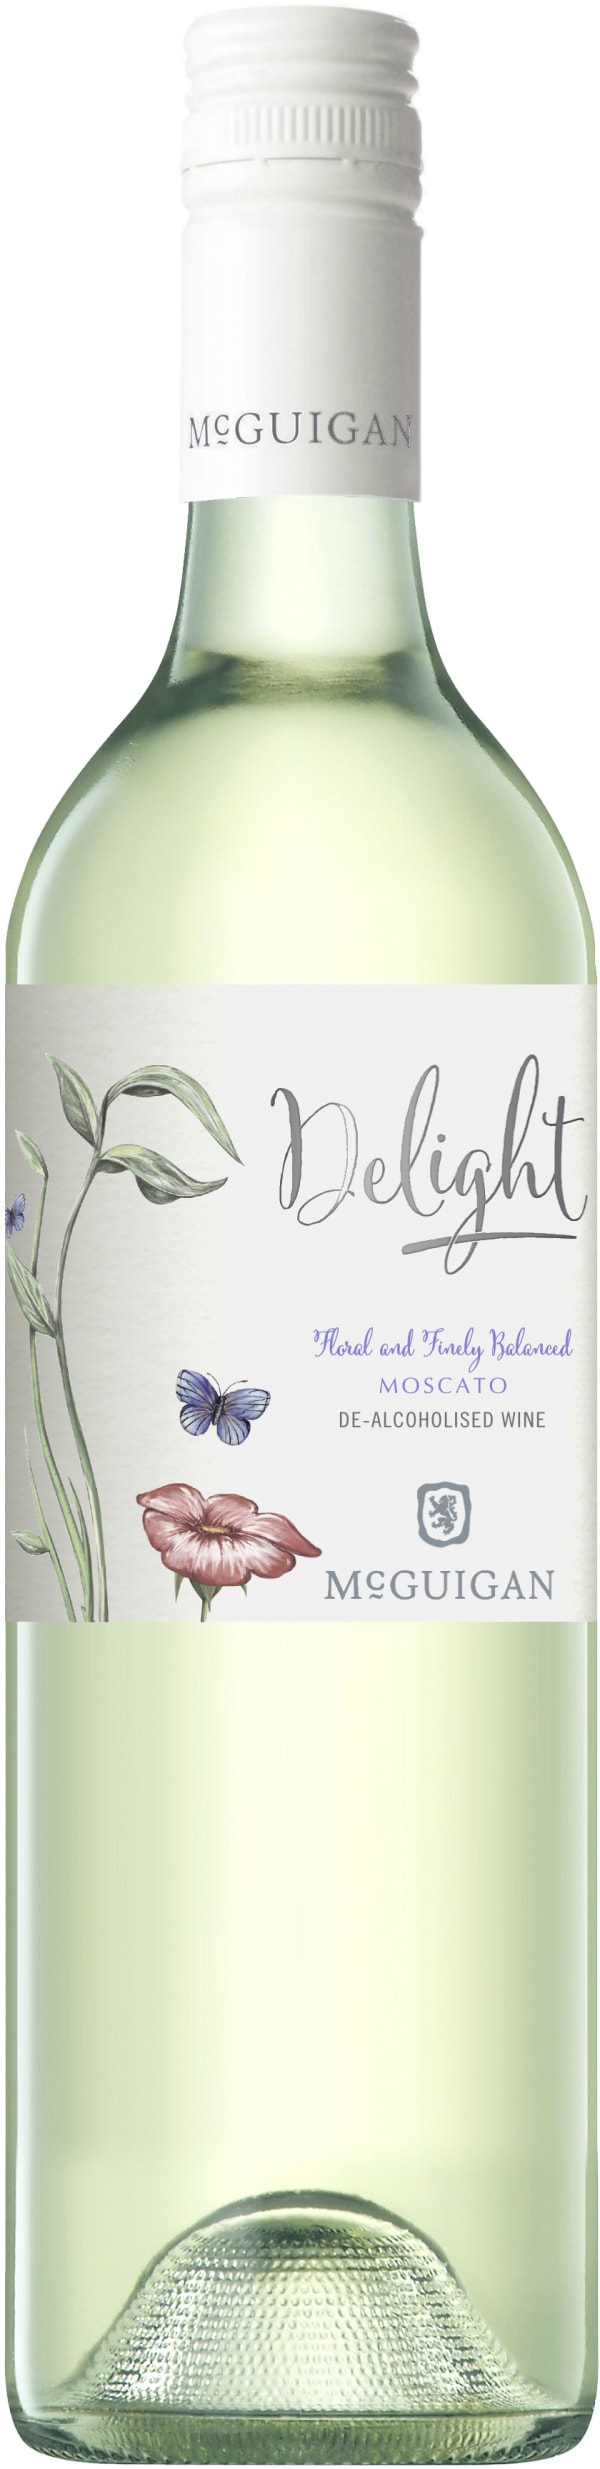 McGuigan Delight Moscato Alcohol free